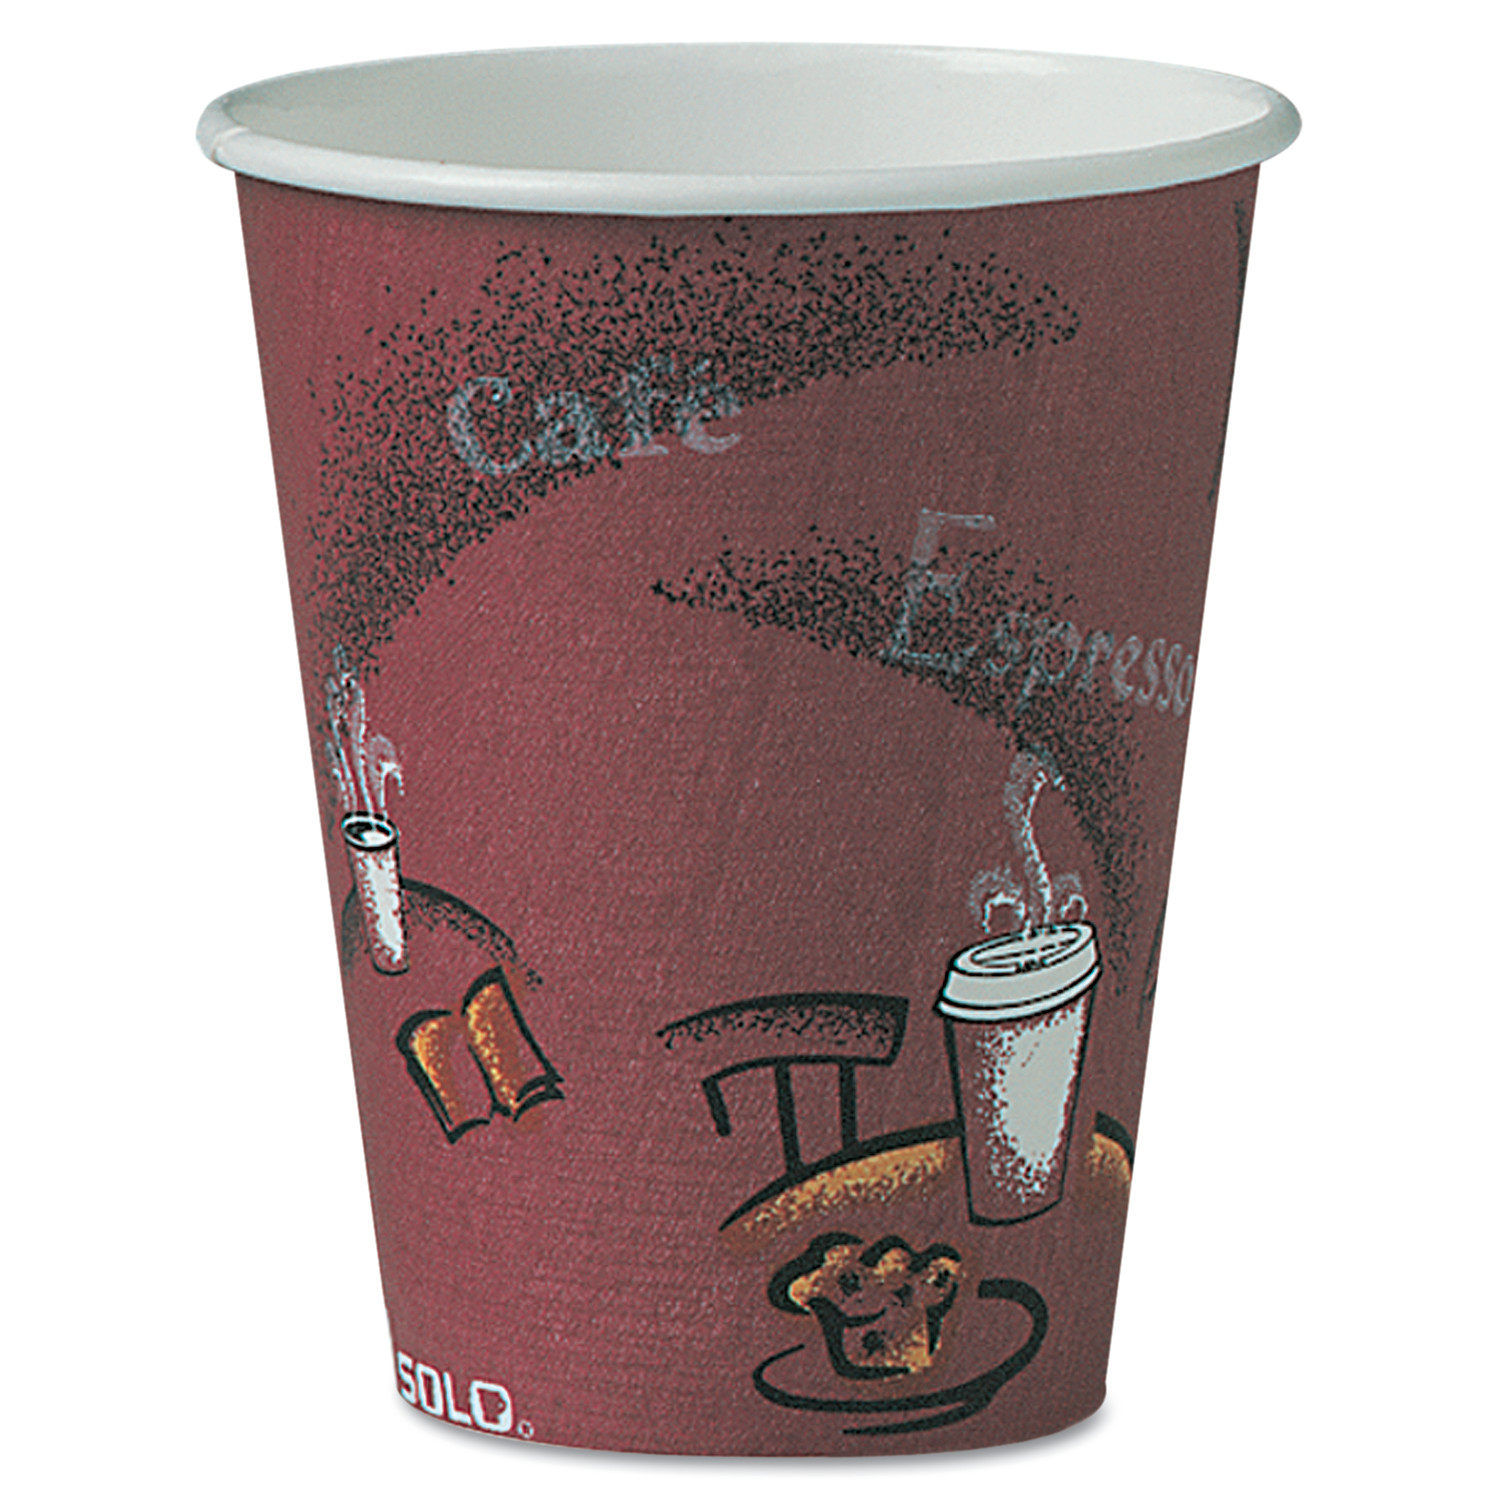 Solo Hot Paper Cups, 8 oz, 500 count